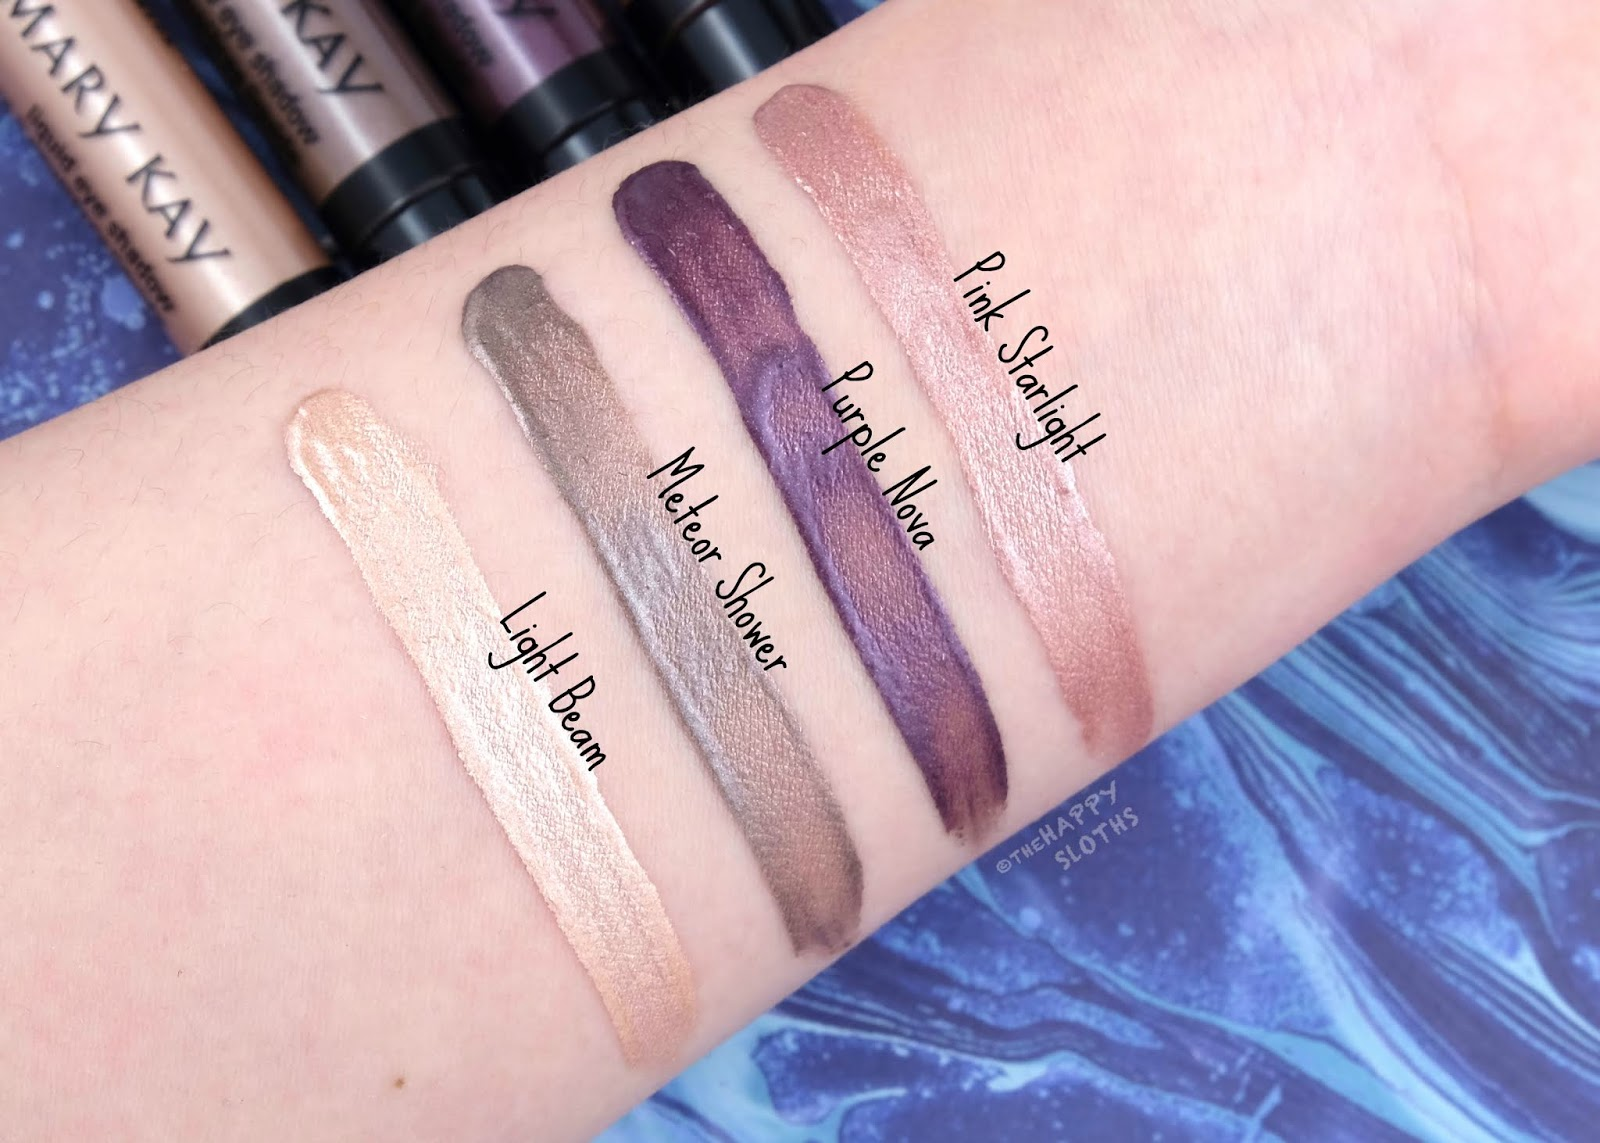 Mary Kay   Spring 2020 Collection   Liquid Eyeshadow: Review and Swatches